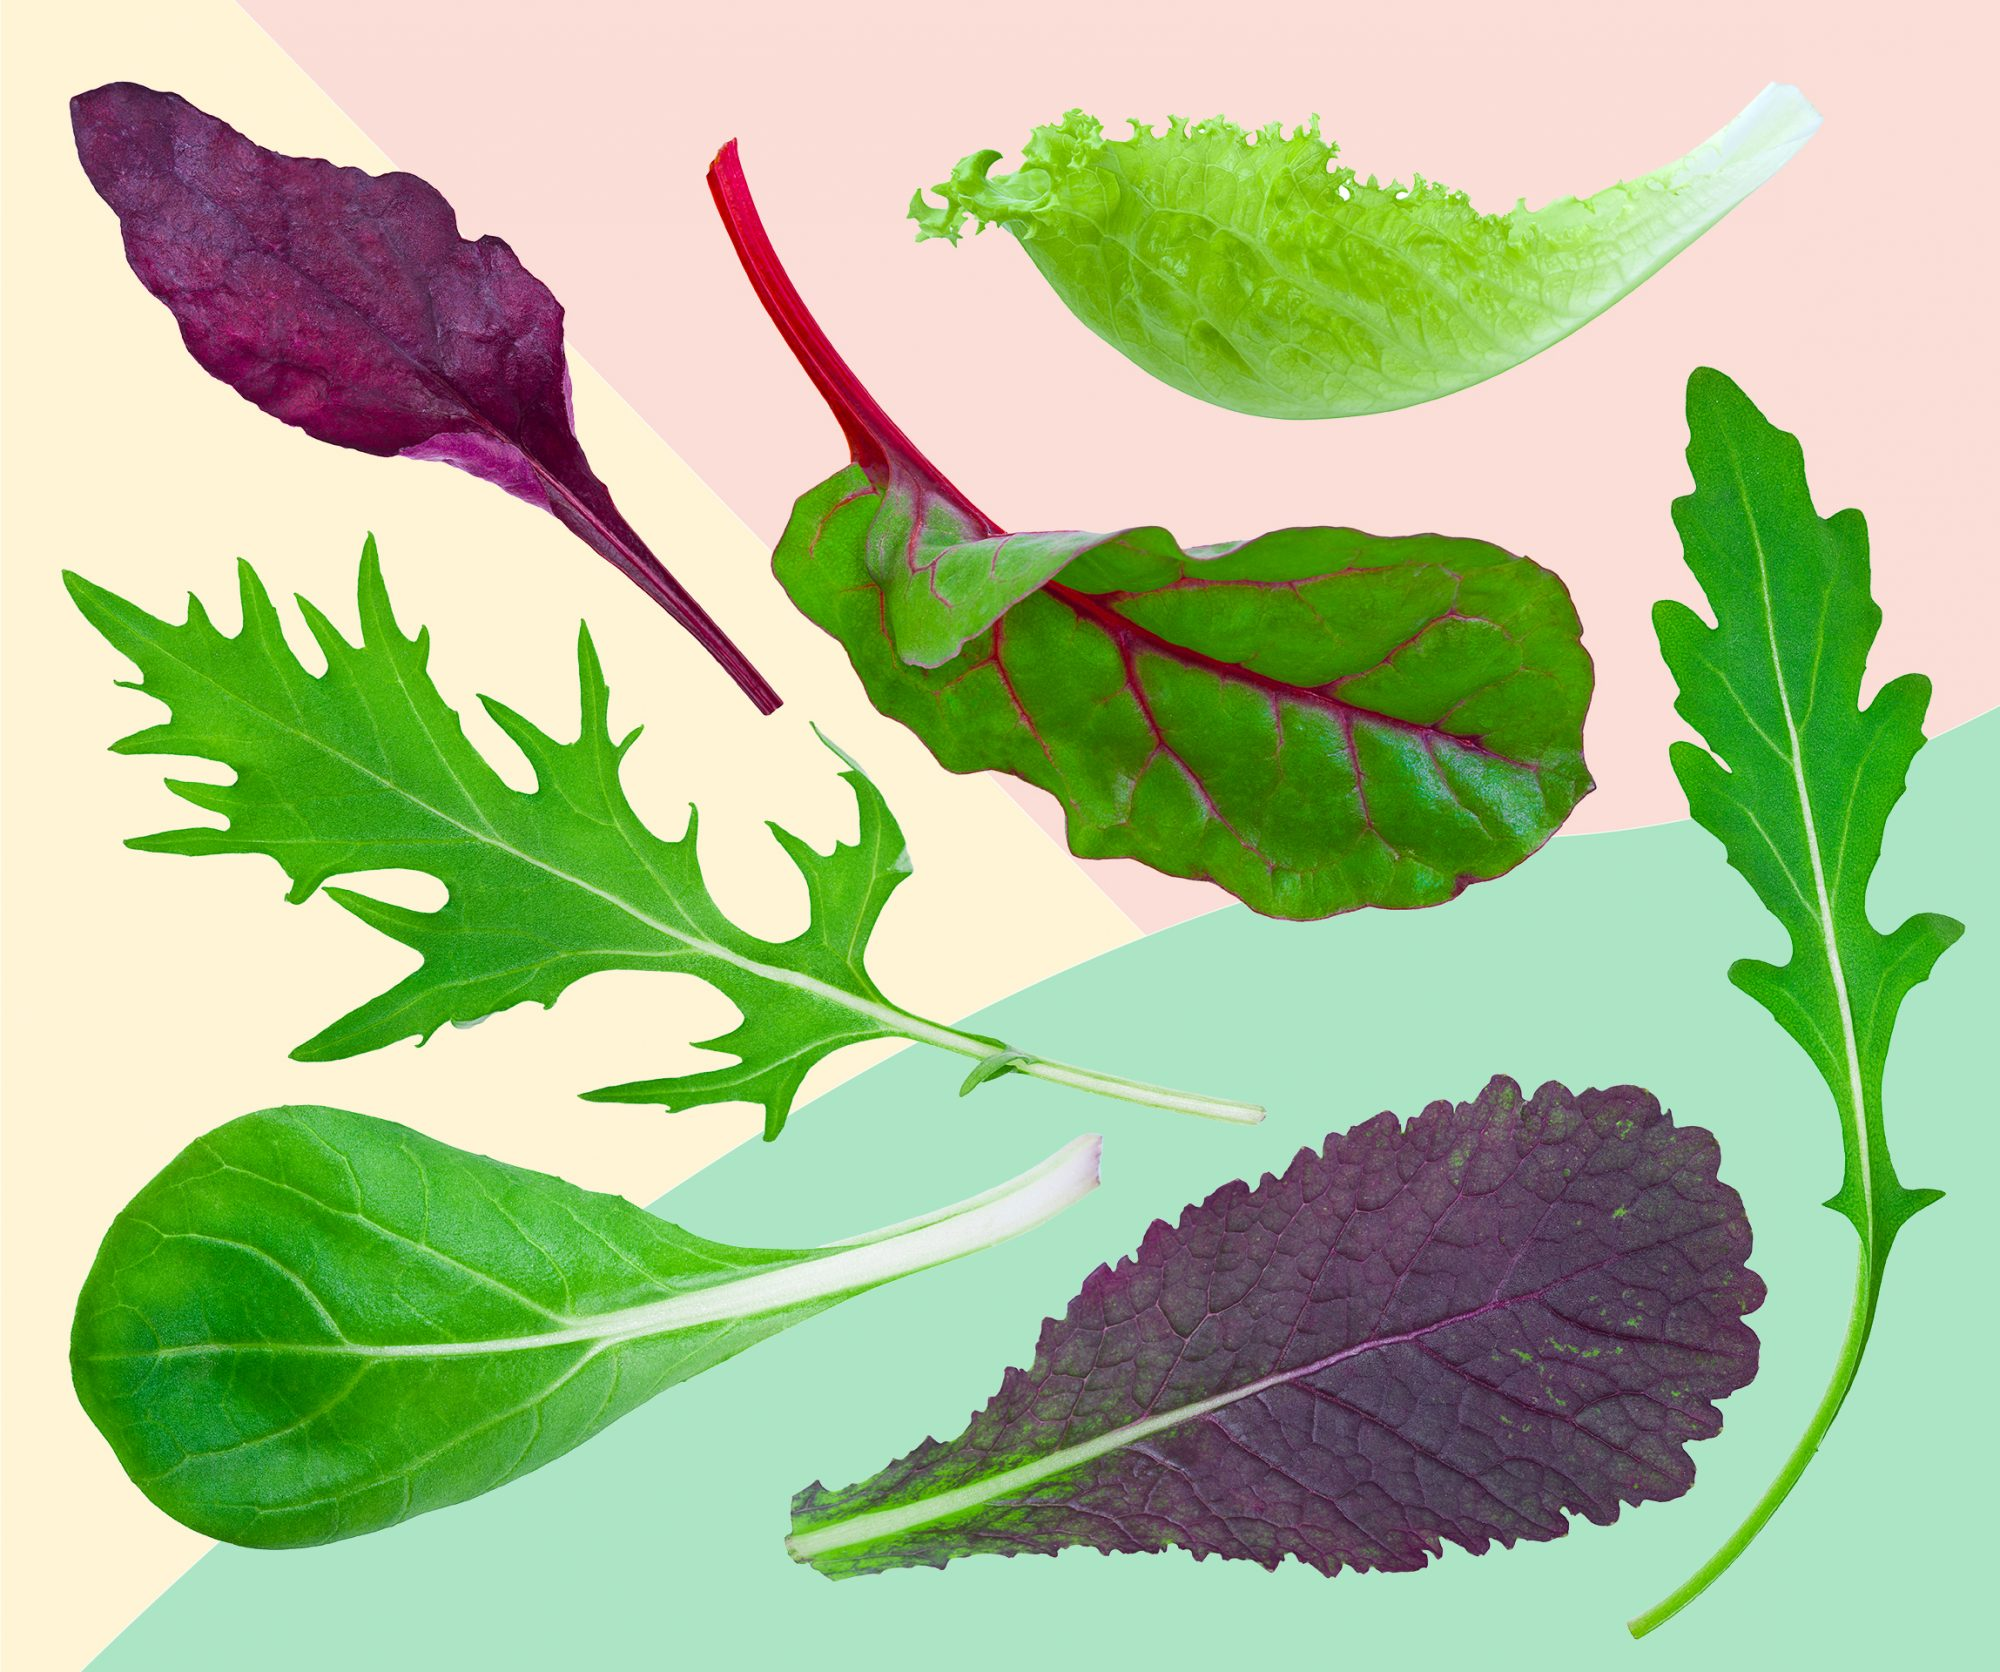 7 Varieties of Lettuce That Will Get You Seriously Excited About Salad